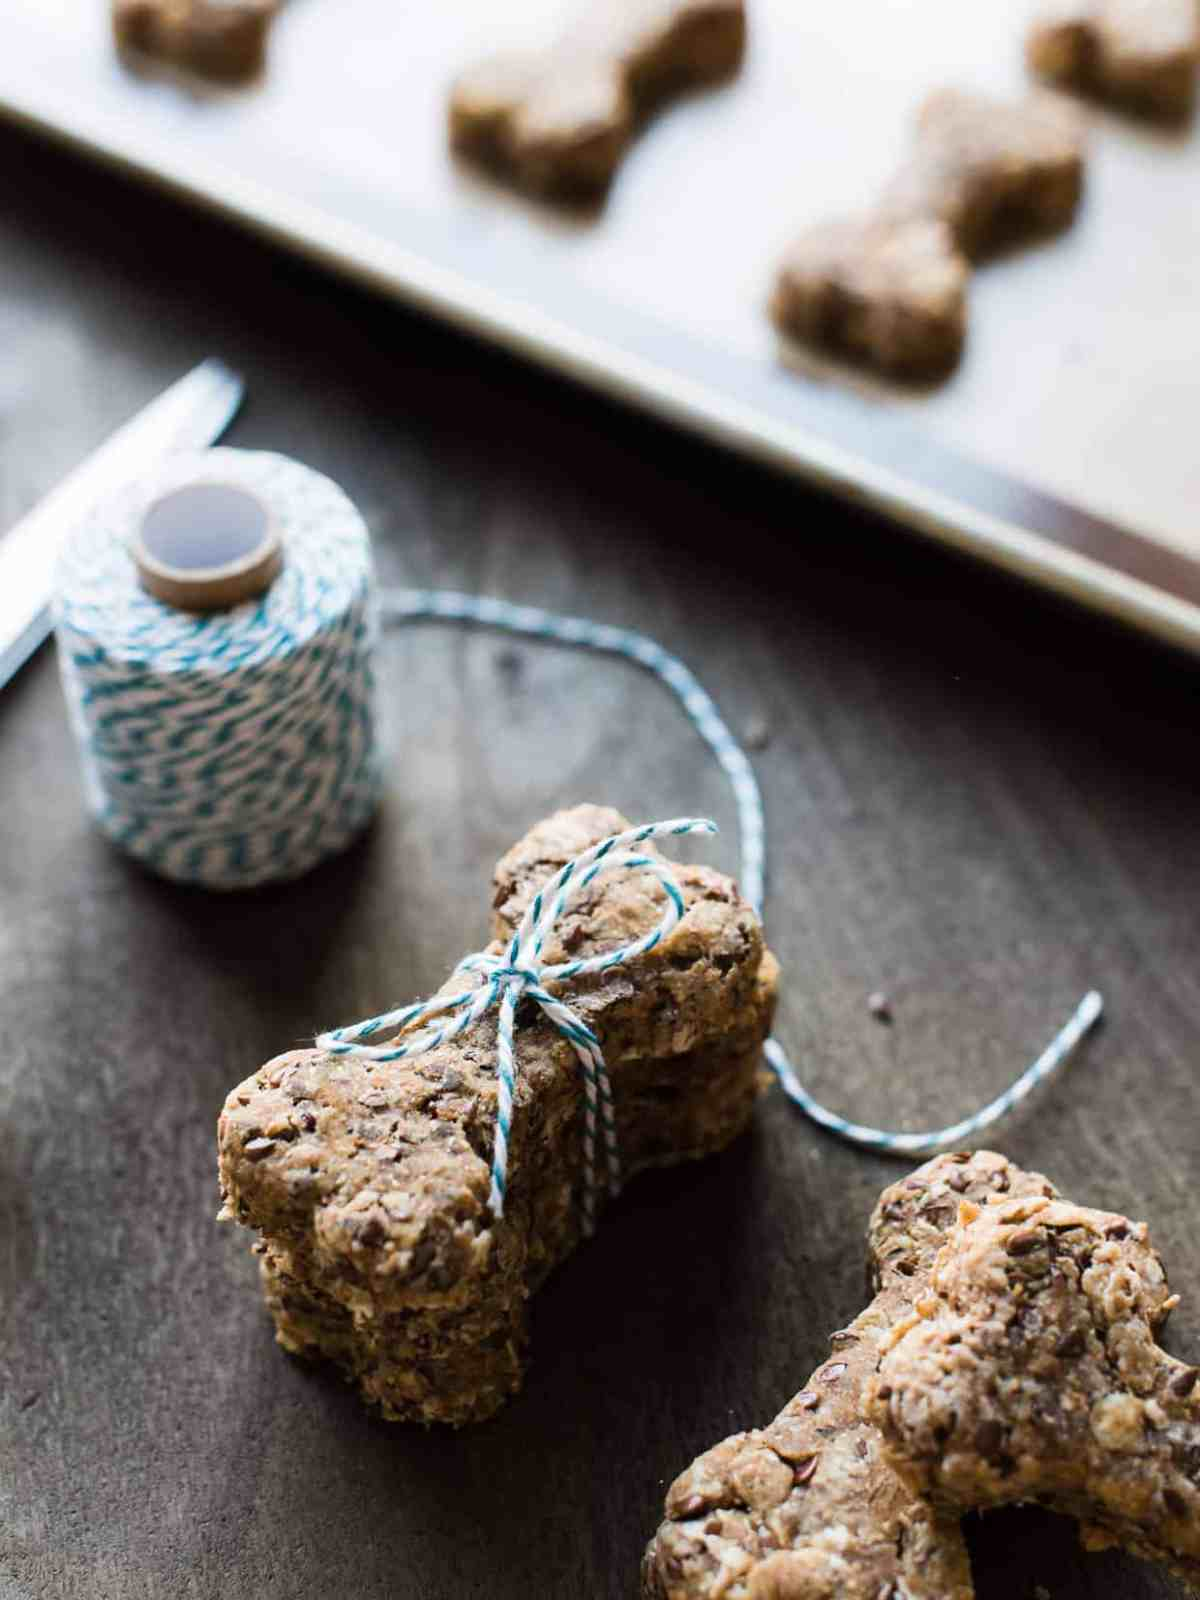 Packaging homemade dog biscuits with twine.